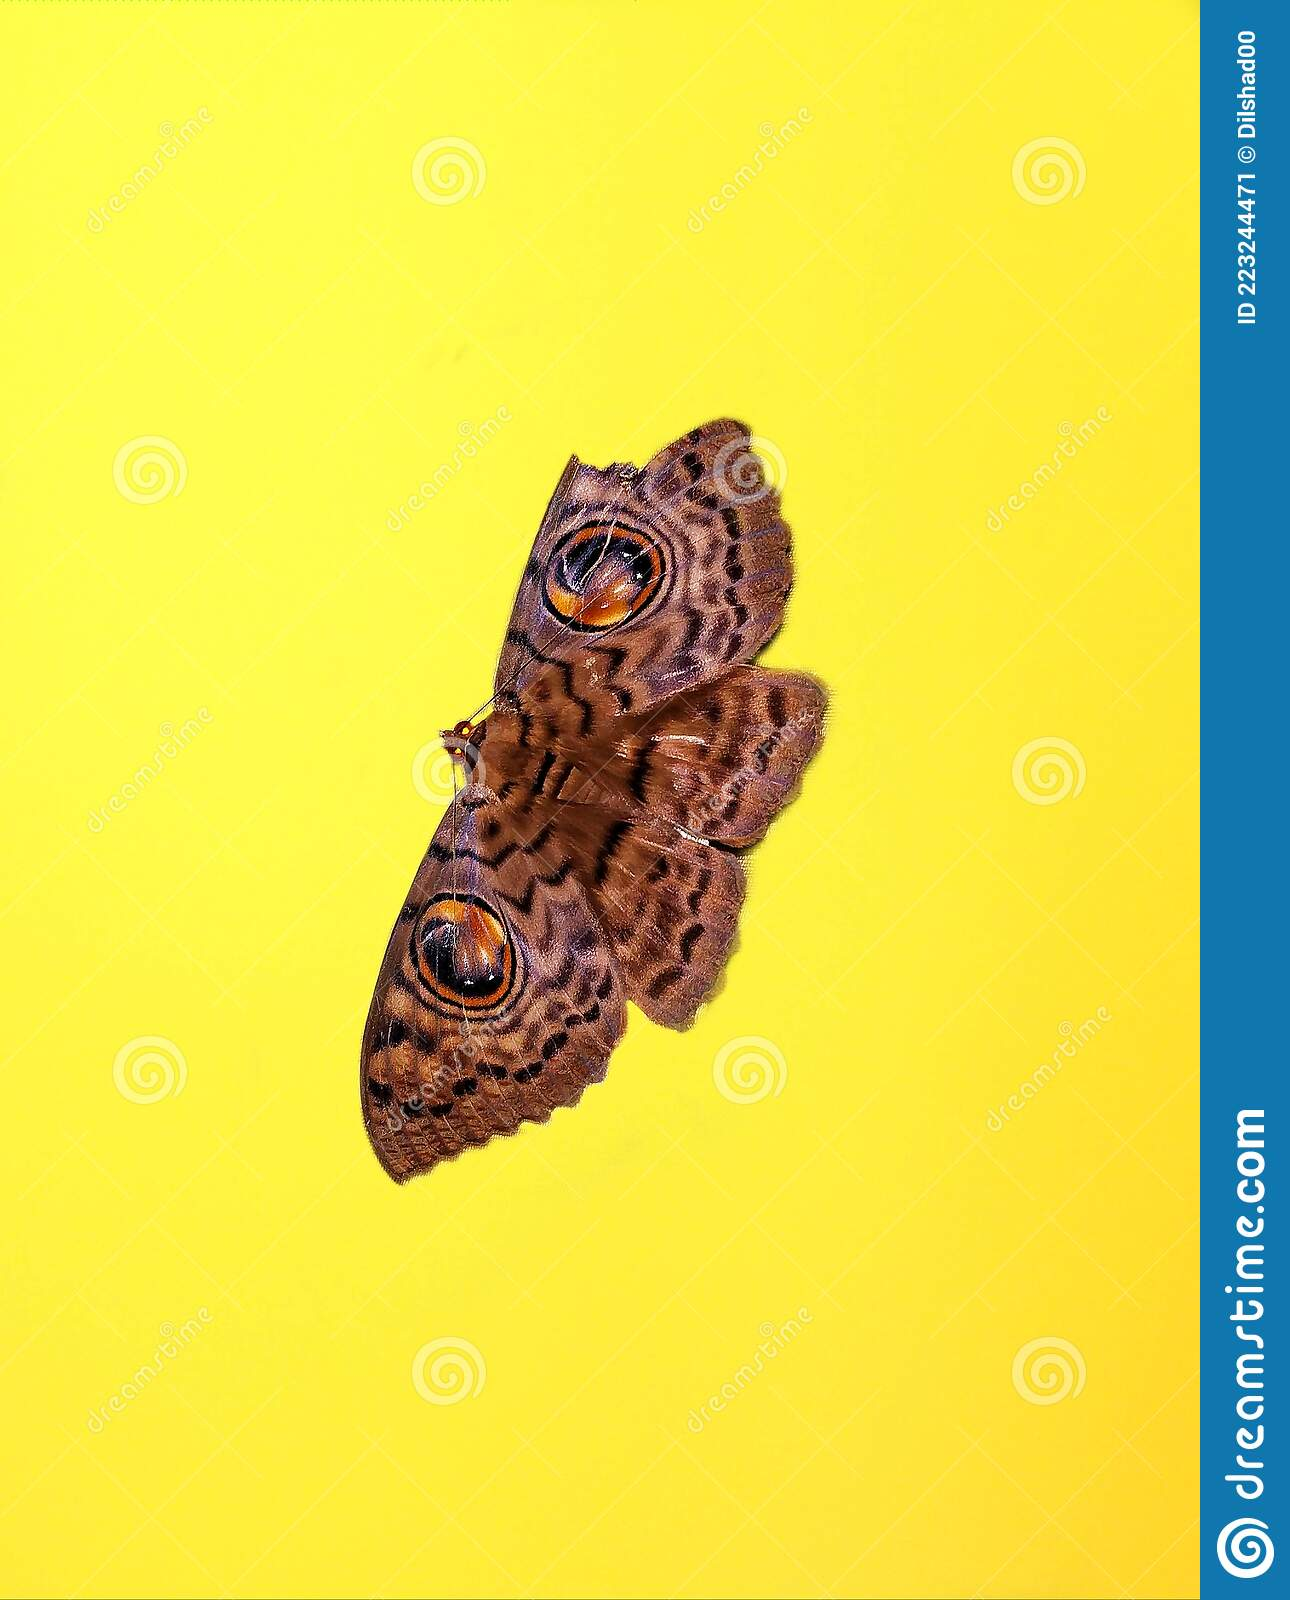 15 213 Butterfly Wallpaper Photos Free Royalty Free Stock Photos From Dreamstime